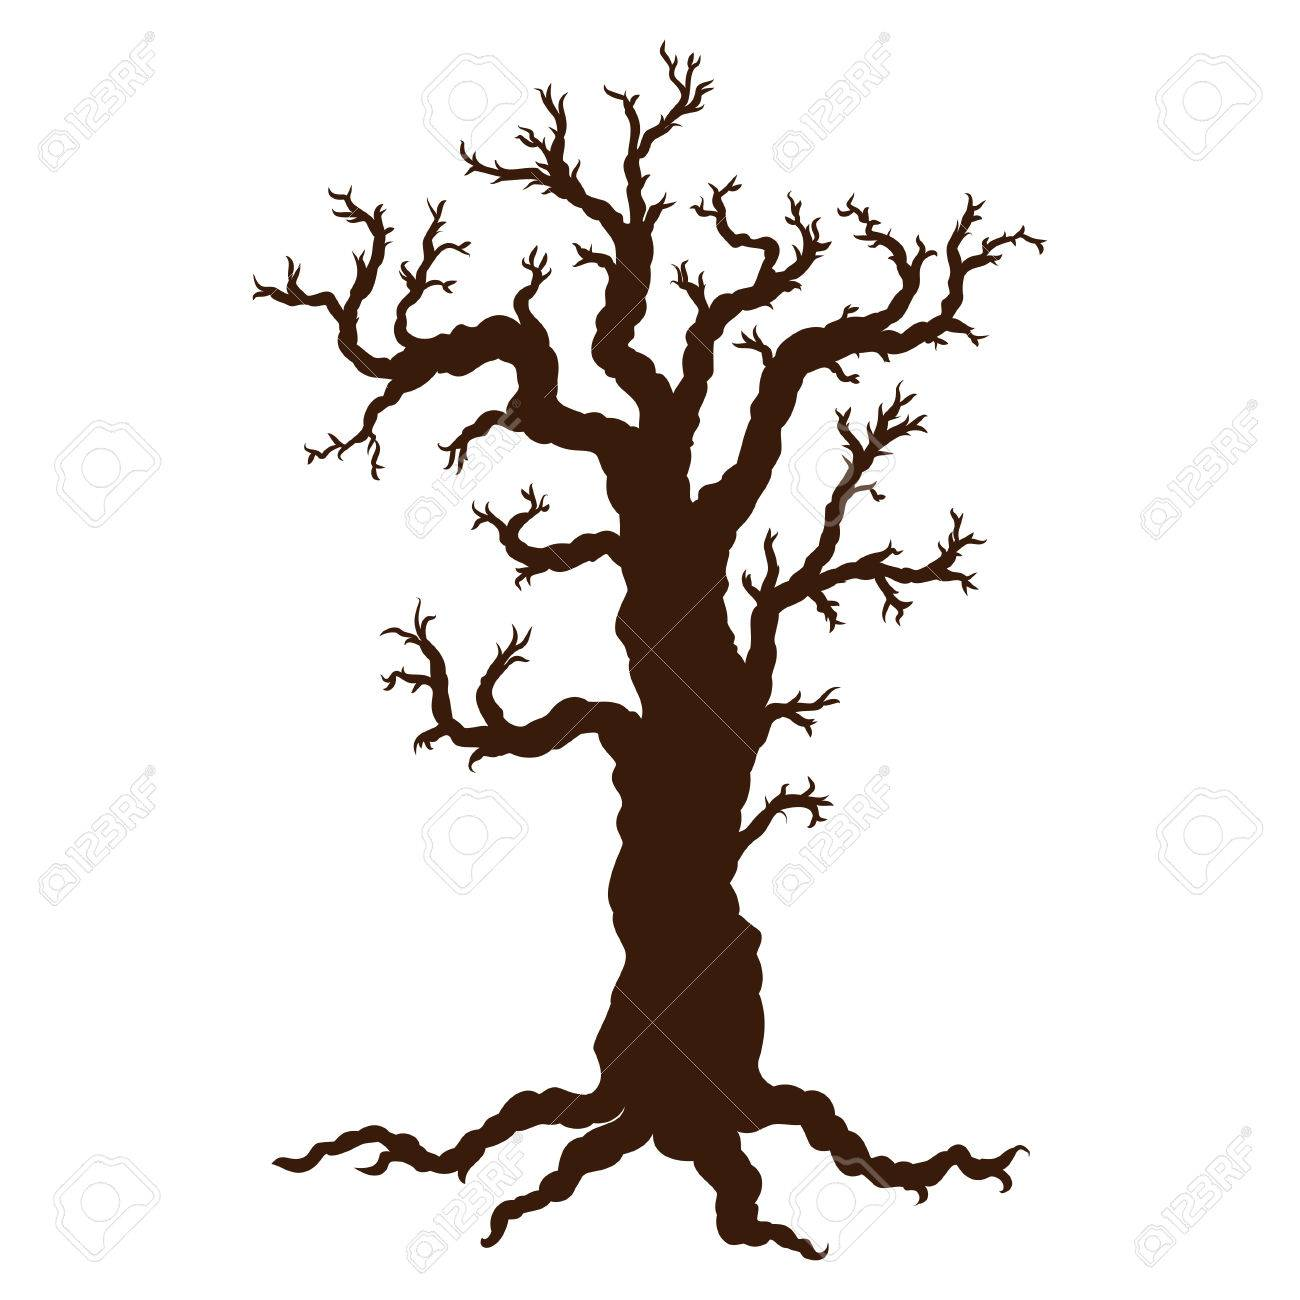 silhouette of halloween tree bare spooky scary halloween tree rh 123rf com Tree Silhouette Coner Border Clip Art Halloween